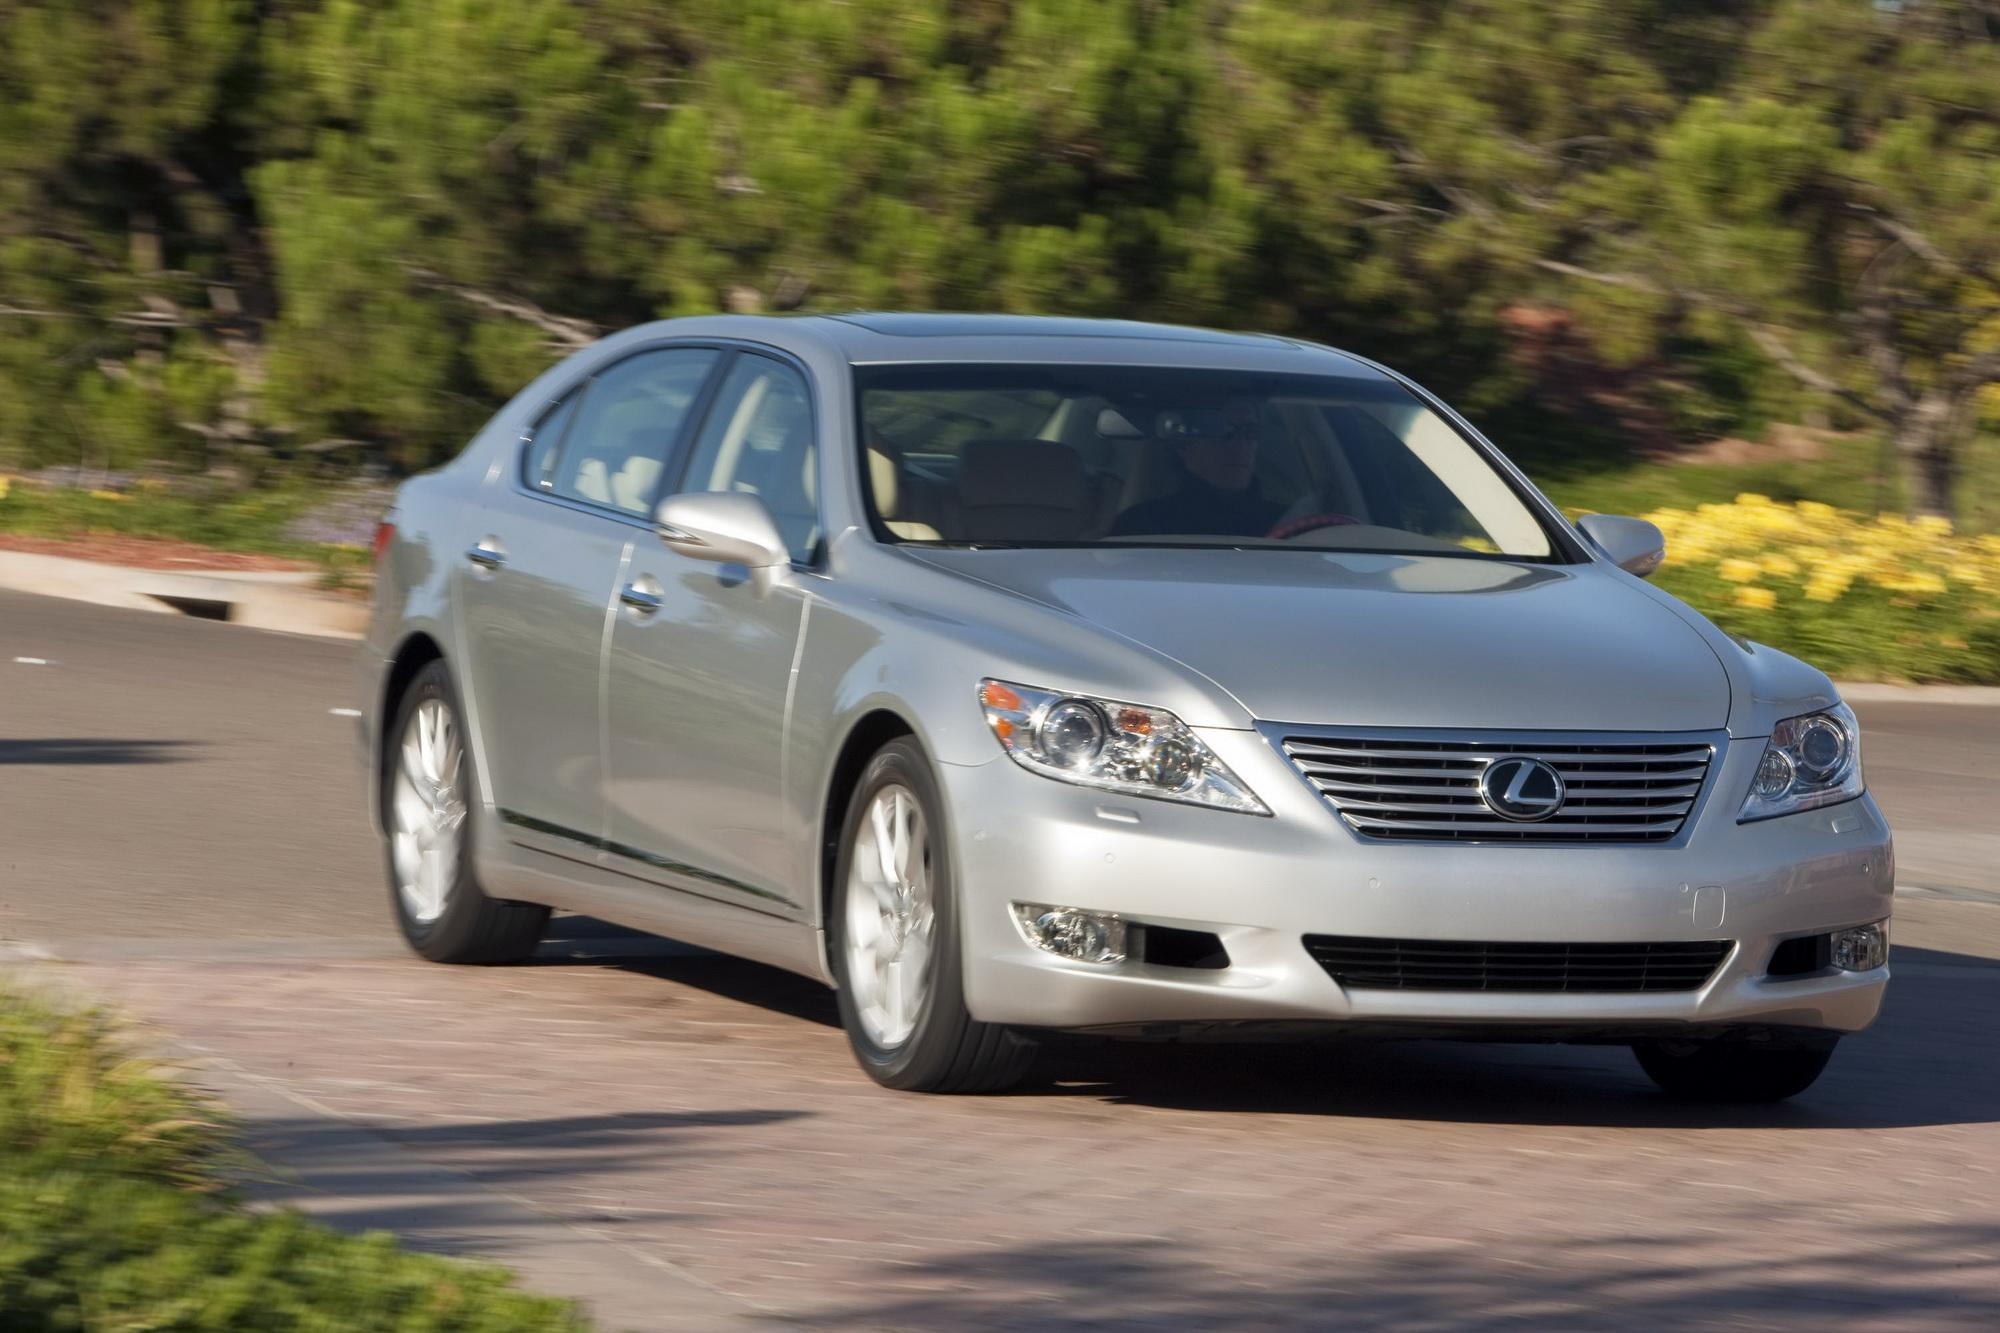 2011 Lexus LS 460 Touring Edition Review Top Speed